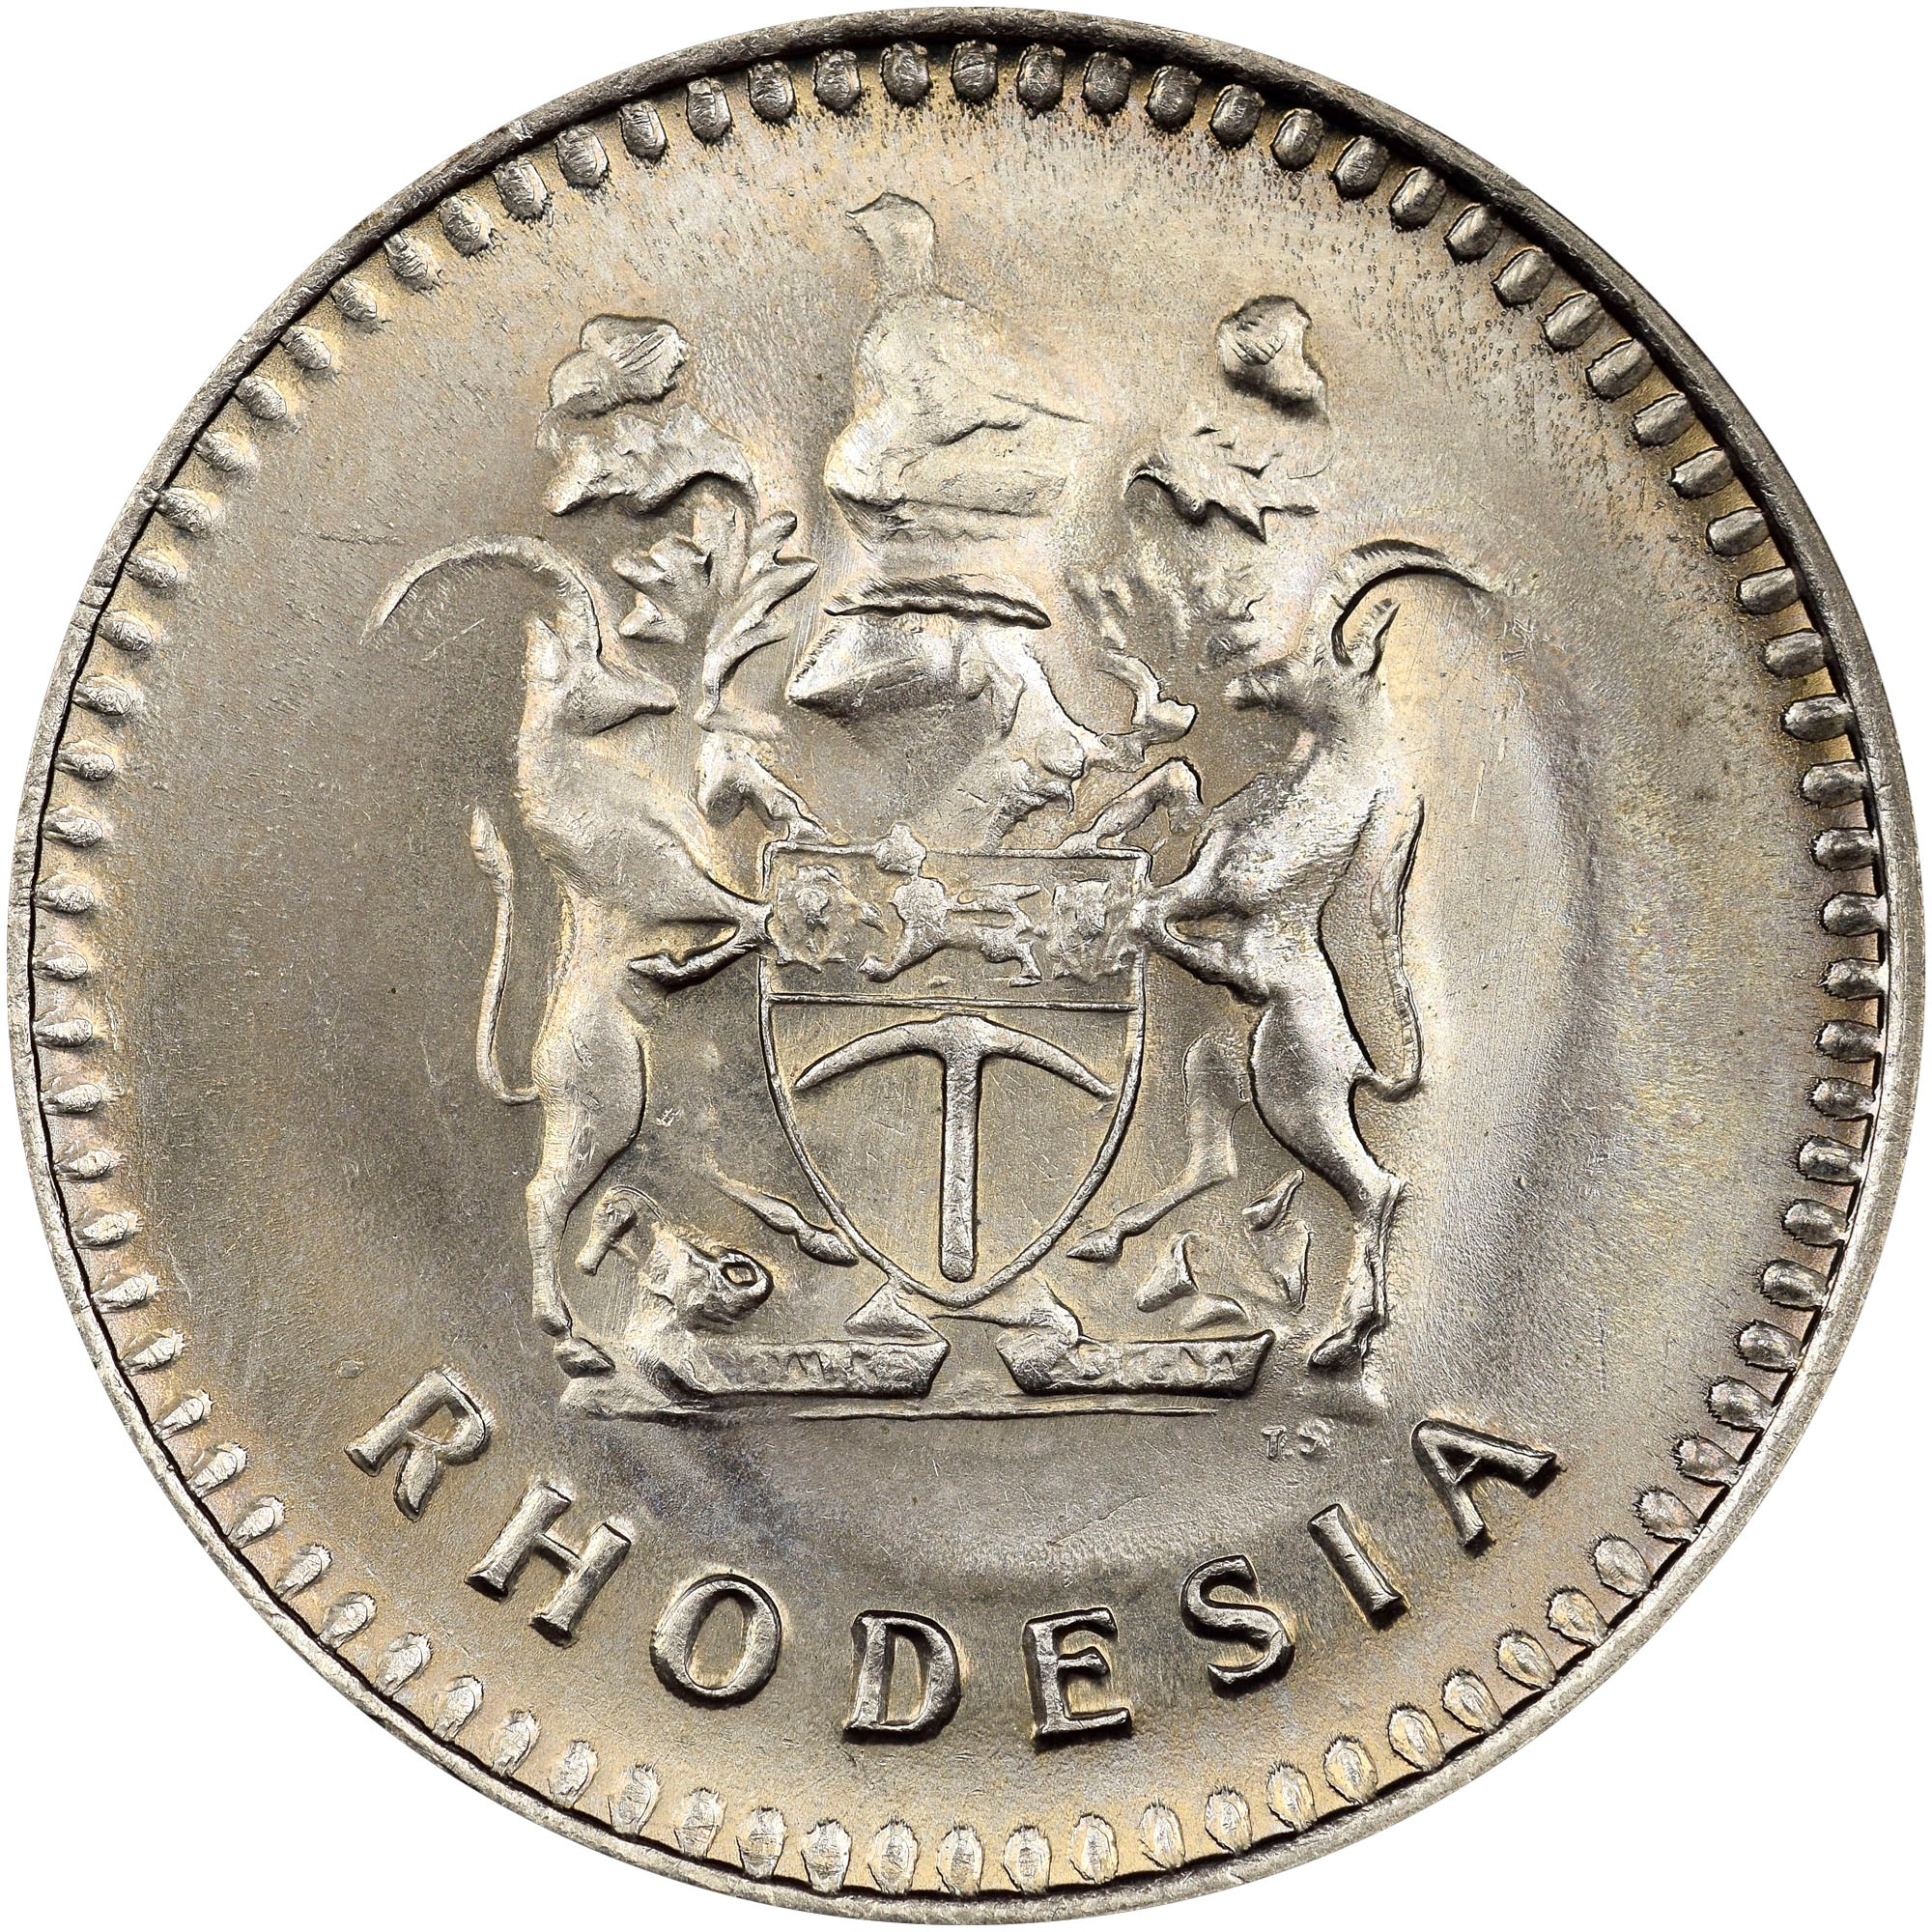 Rhodesia 20 Cents obverse